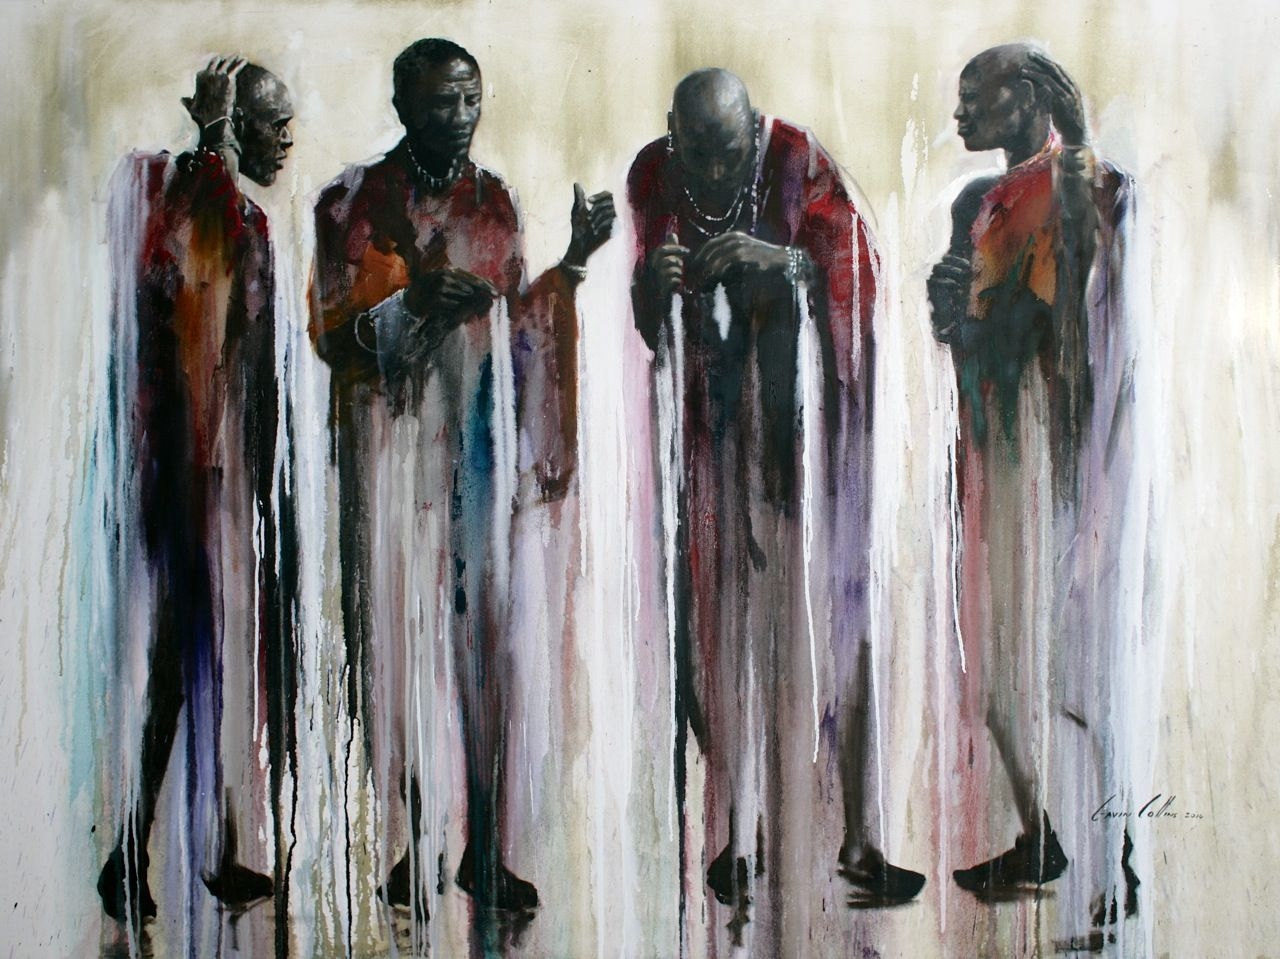 """Title: """"The Discussion"""" Gavin Collins Paintings Size: 2m x 1,5m"""